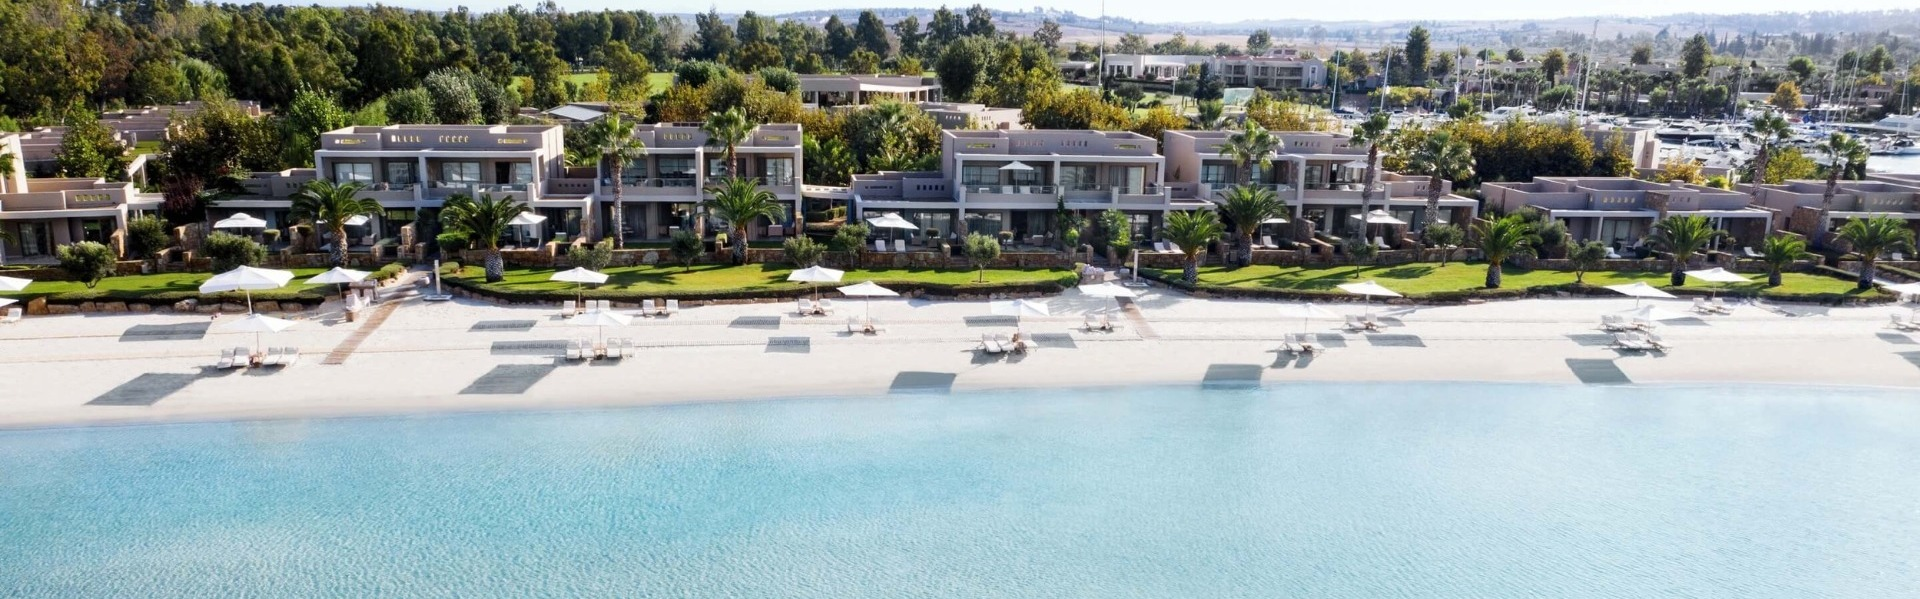 Sani Resort Greece - Luxury Holidays on the beach front